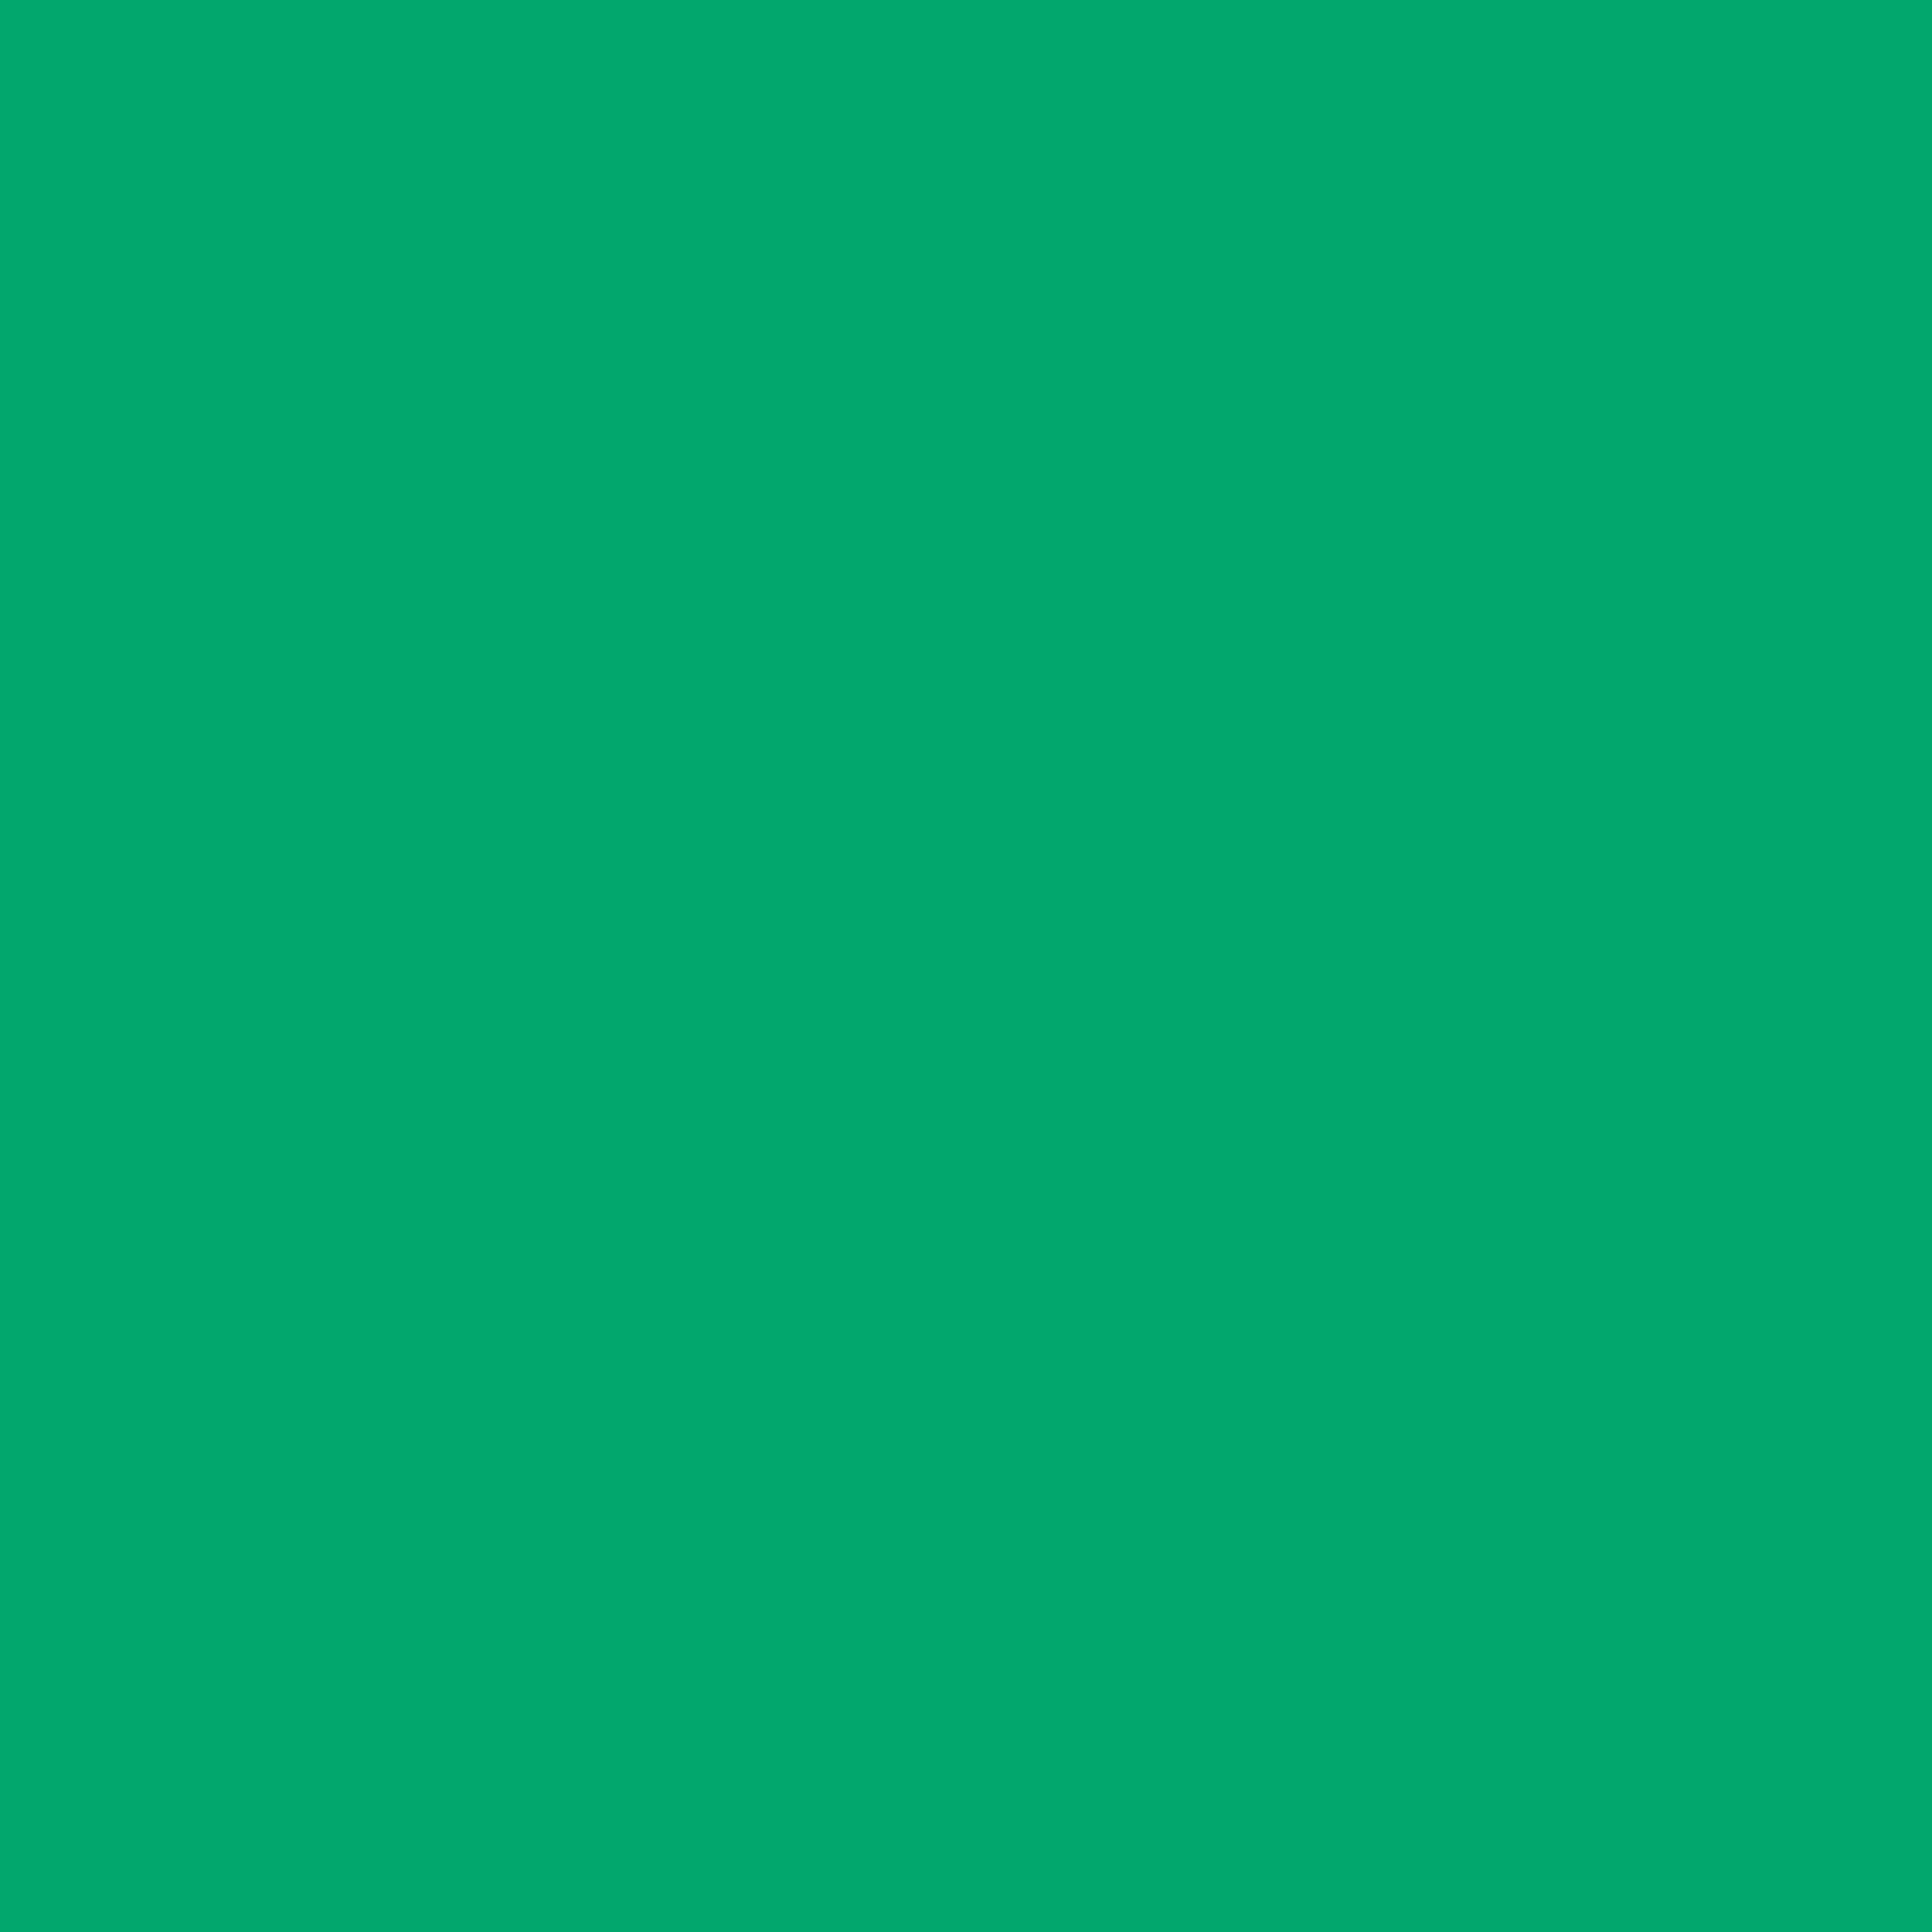 3600x3600 Jade Solid Color Background